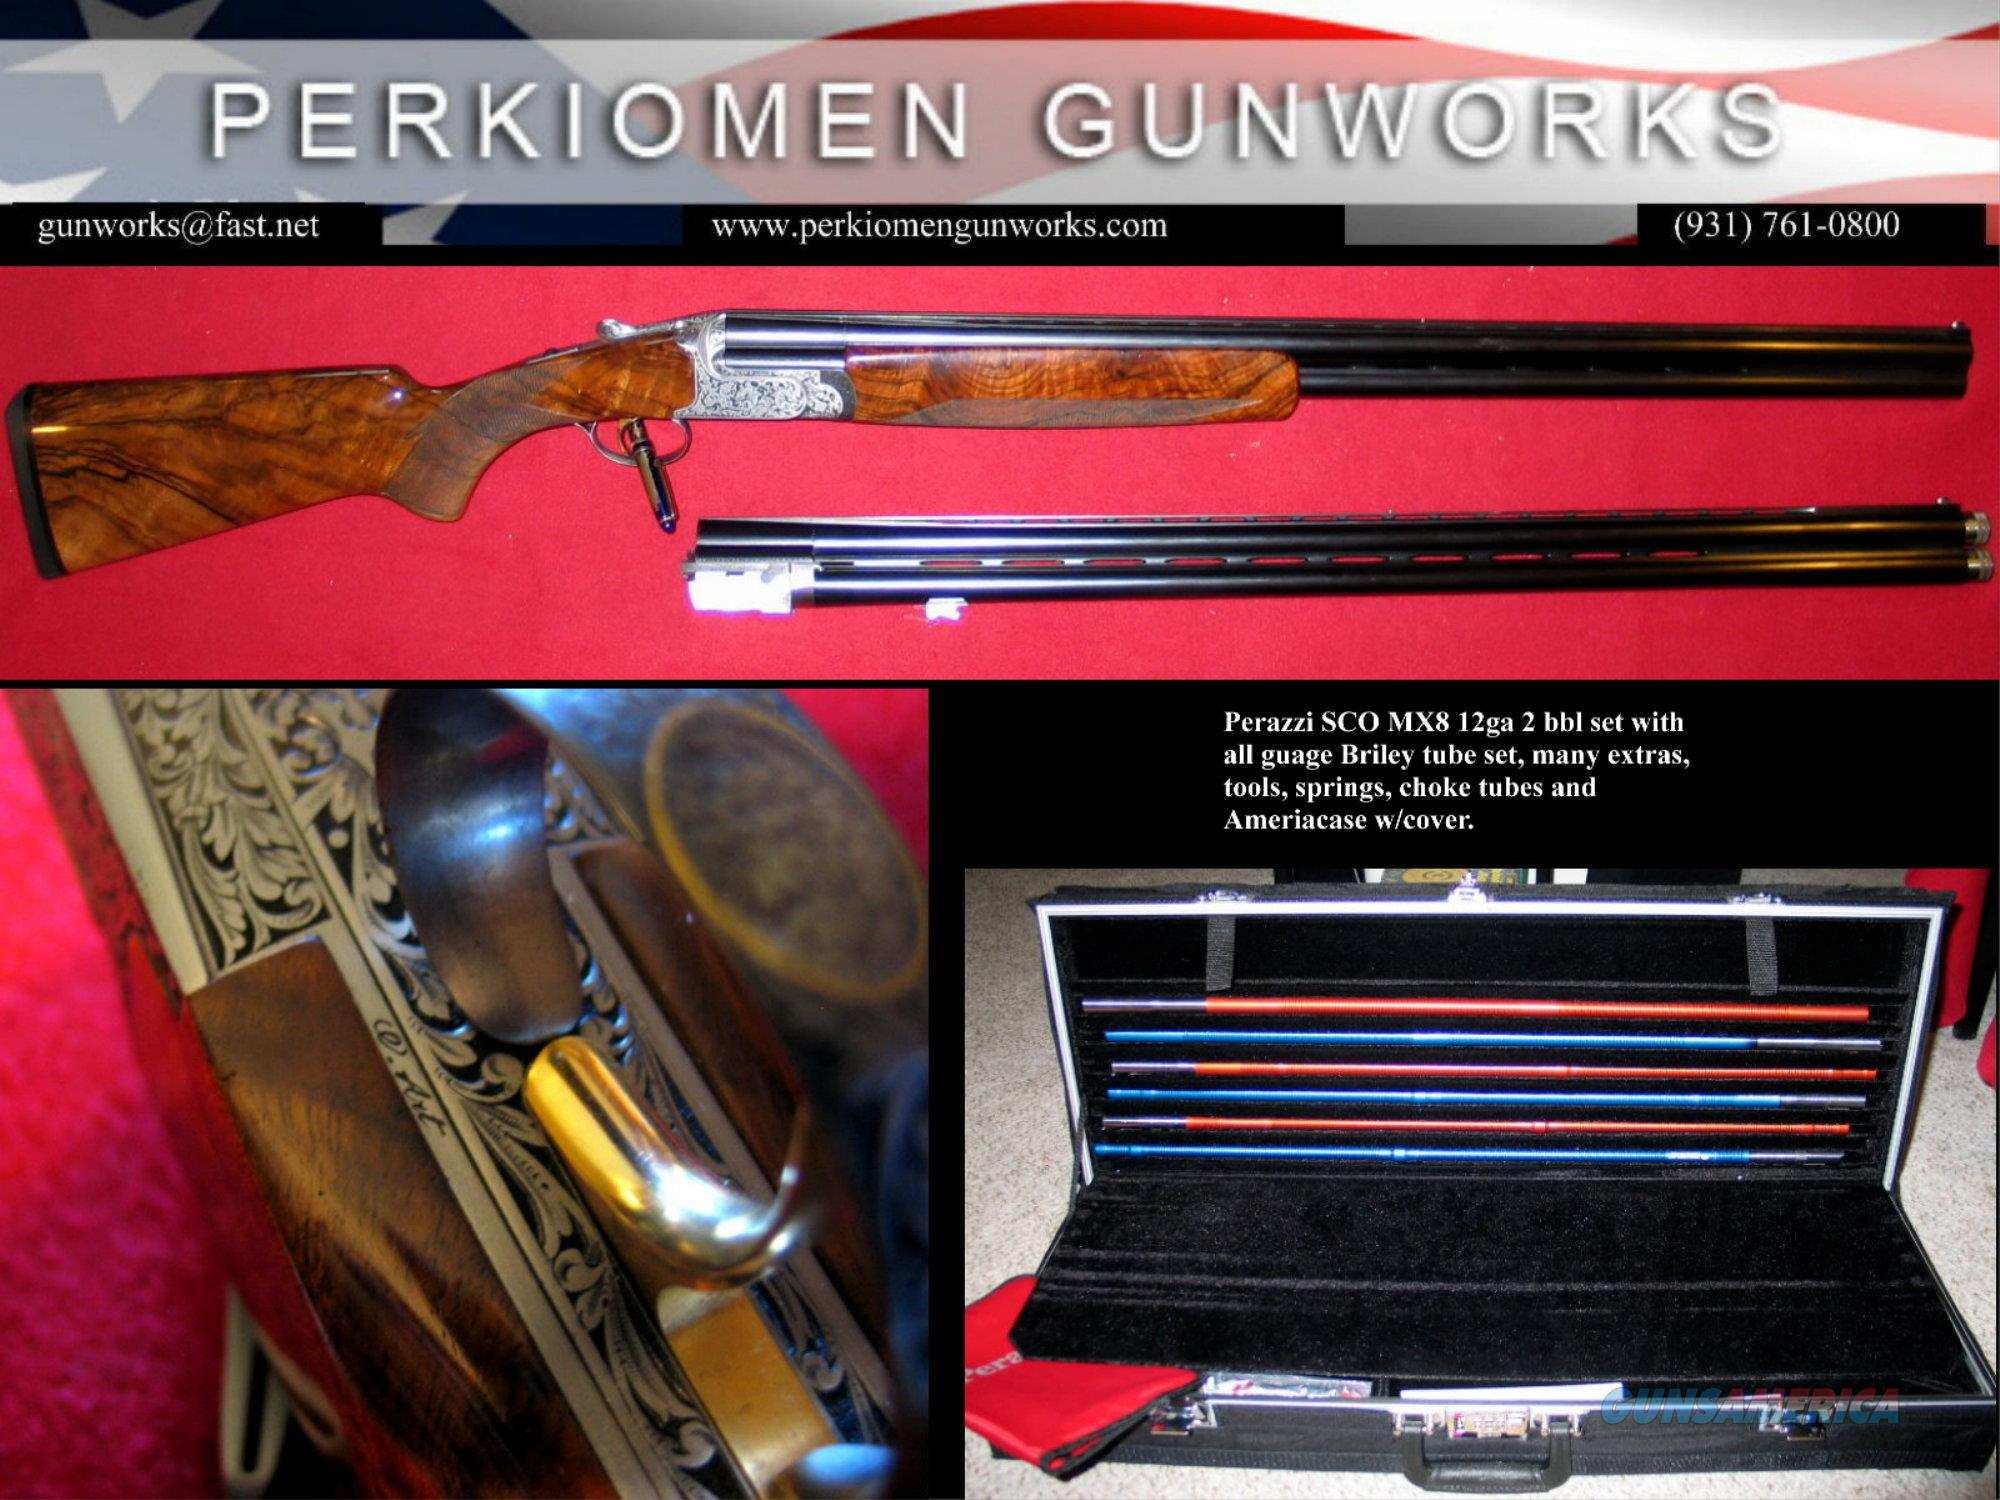 SCO MX8 2-Barrel set w/Briley sub-gauge tube set - cased - LOOK!  Guns > Shotguns > Perazzi Shotguns